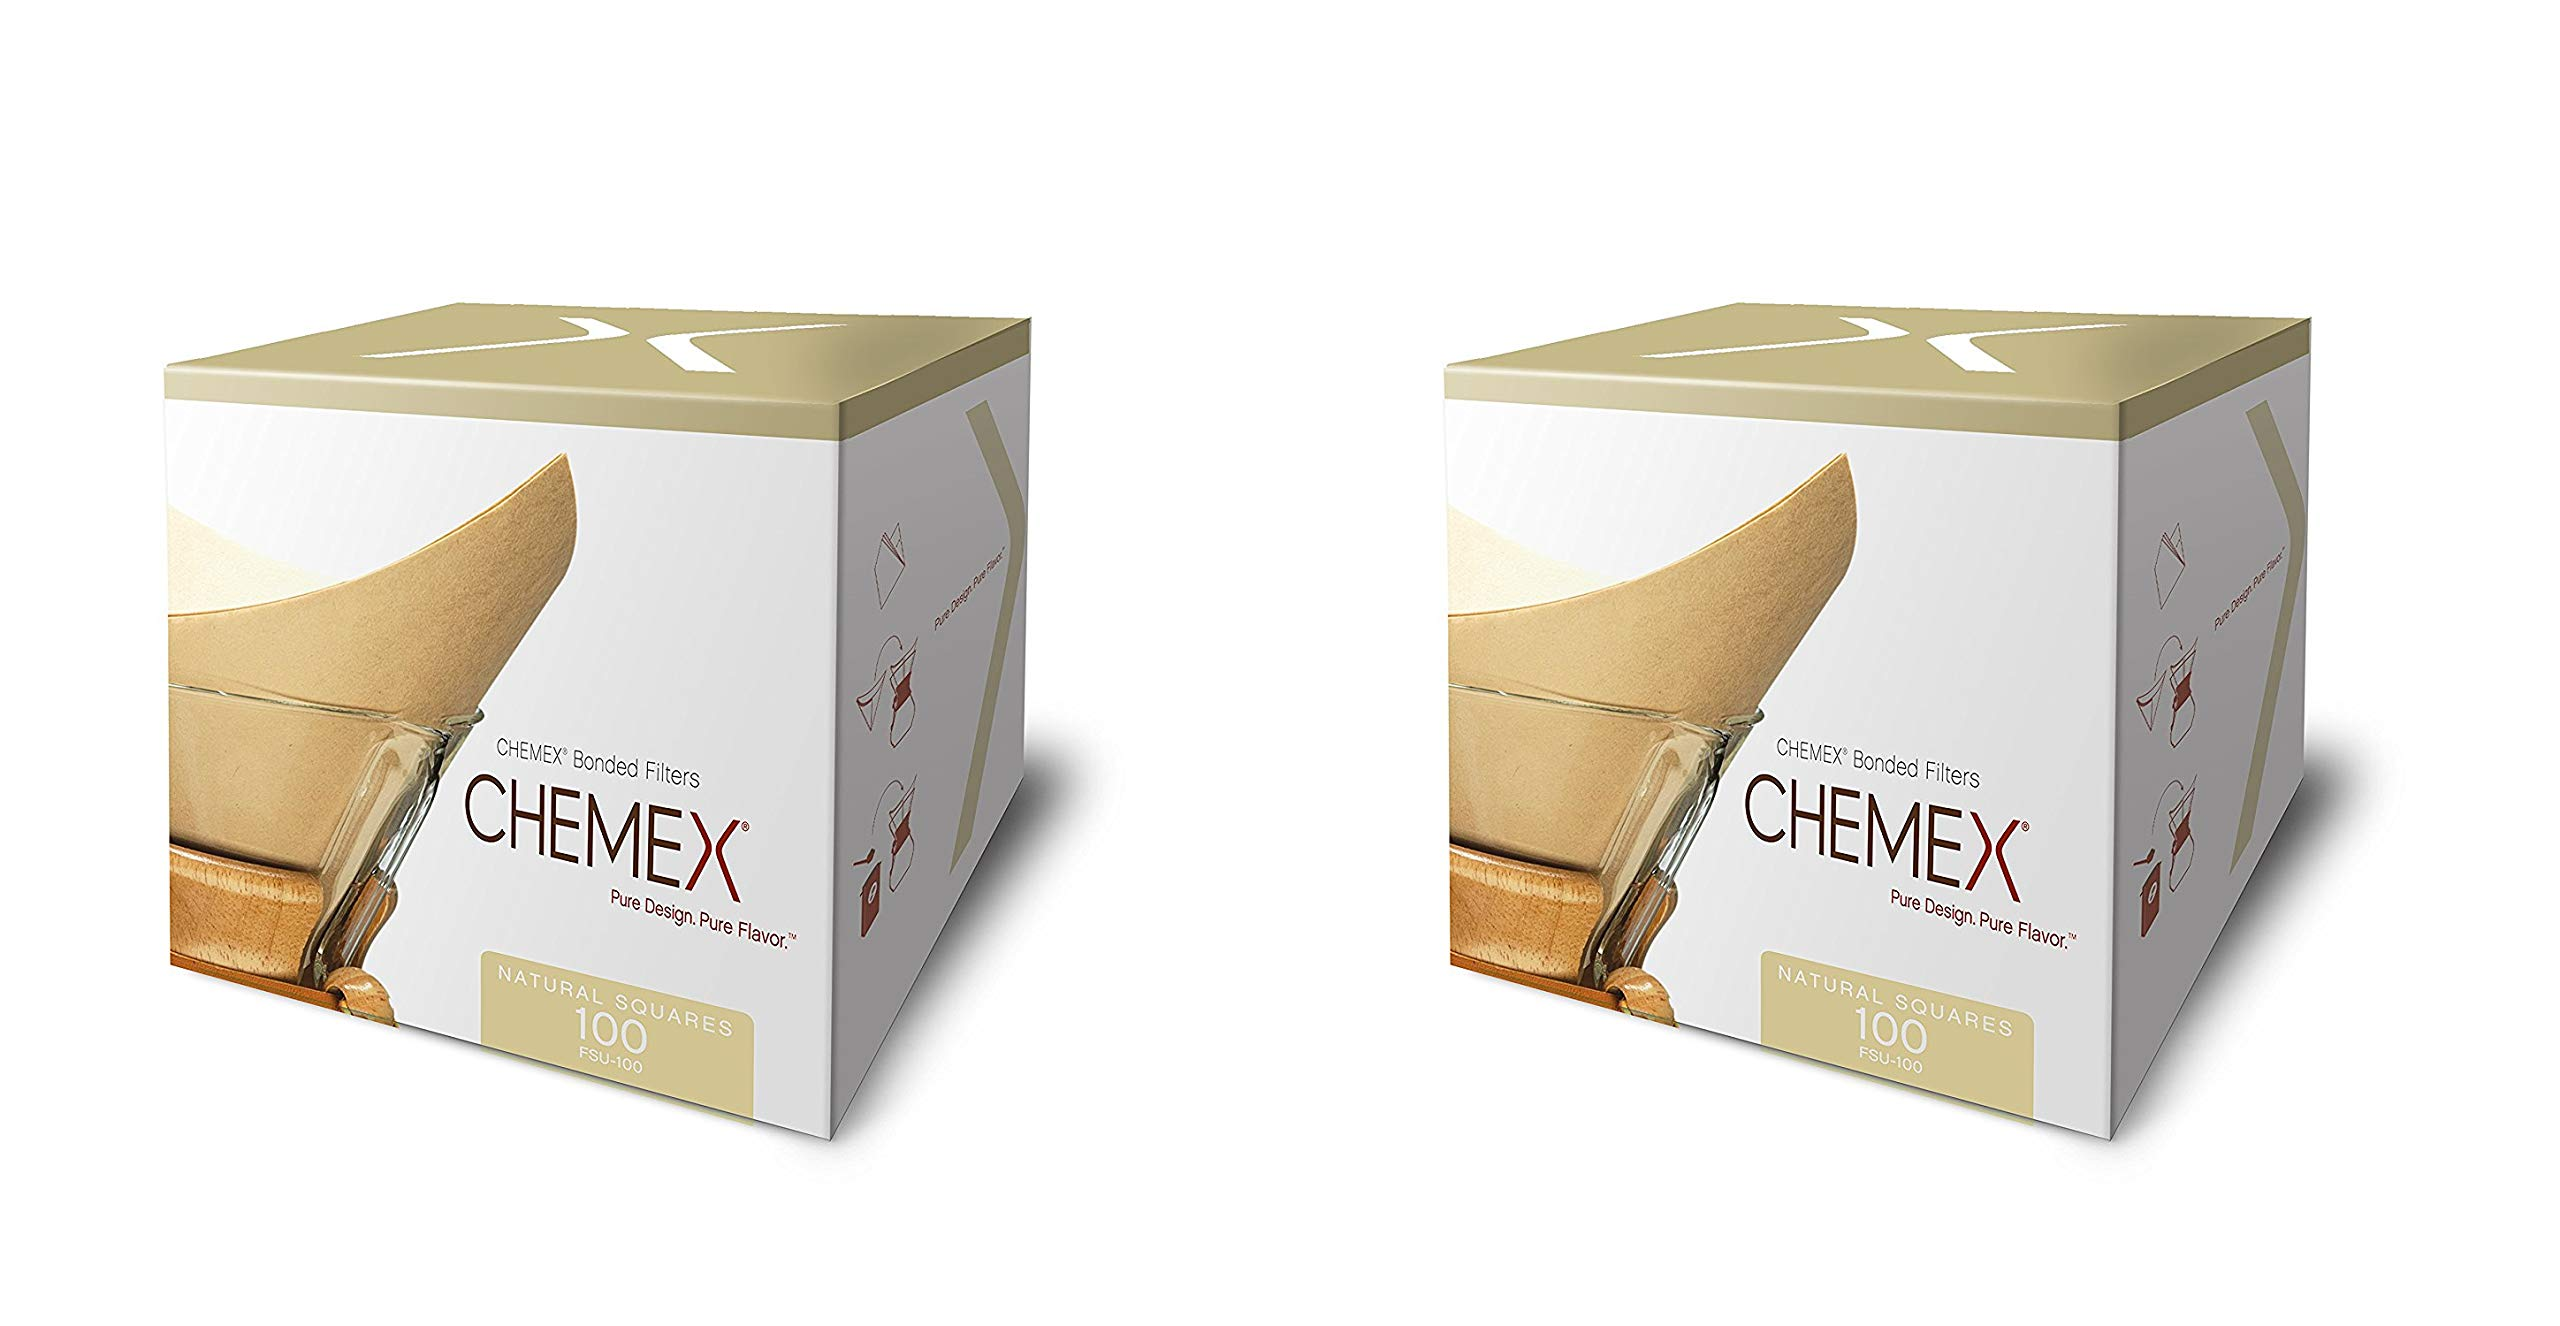 Chemex Natural Coffee Filters, Square, 100ct - Exclusive Packaging, 2 Pack